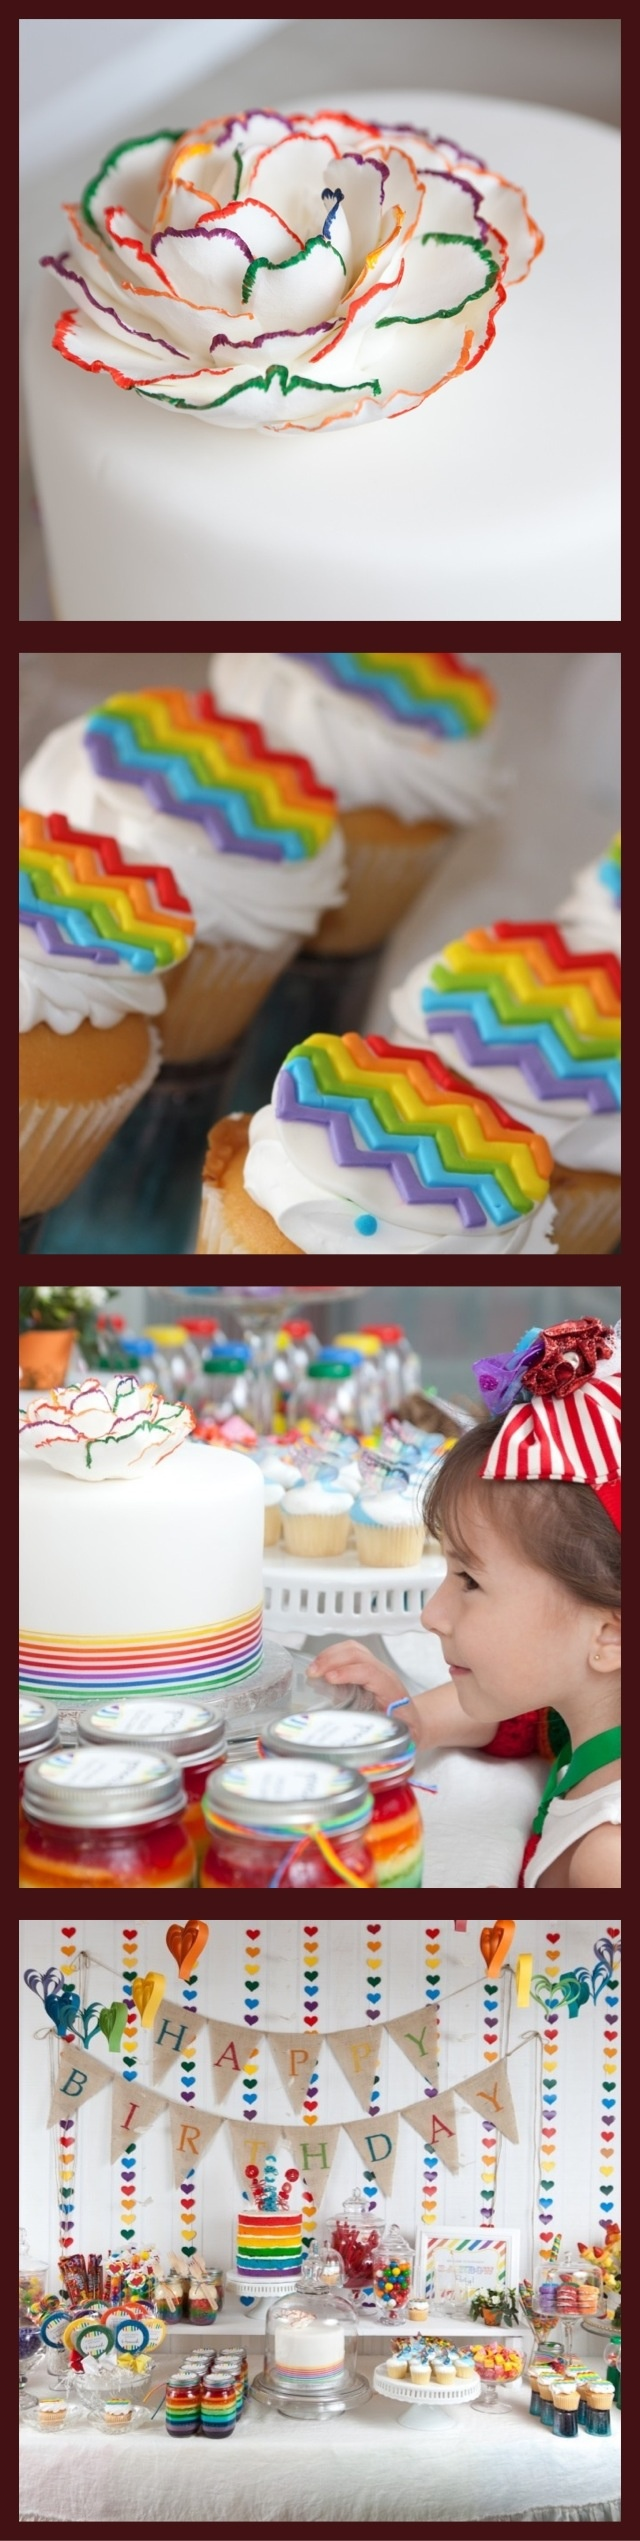 best rainbow party images on pinterest birthday party ideas